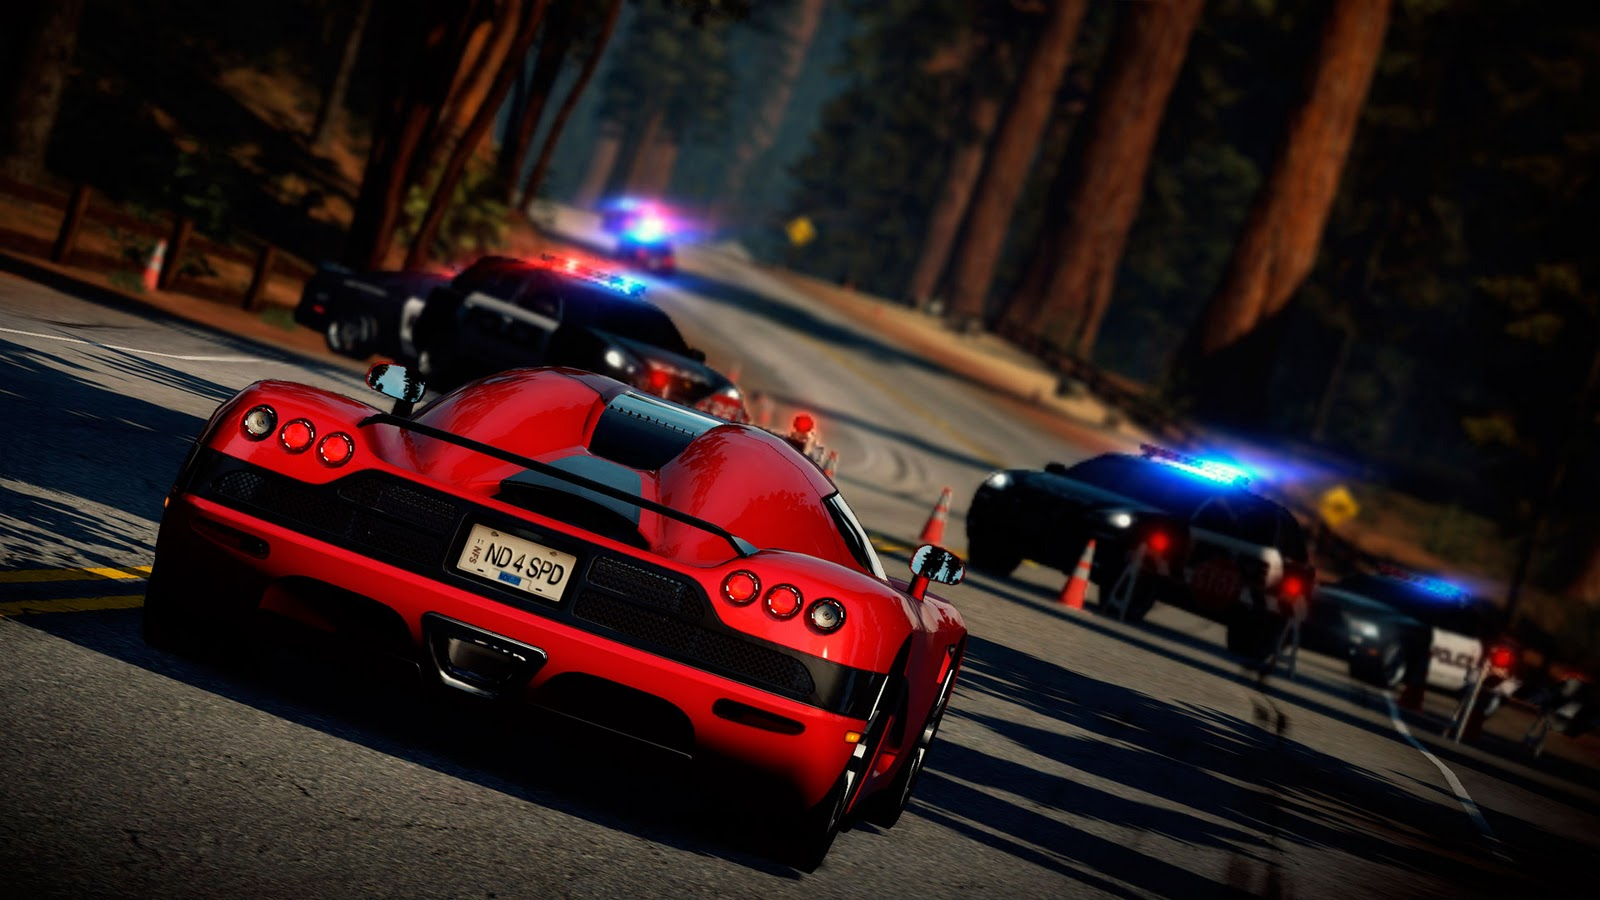 Need for speed hot pursuit hd duvar kağıtları